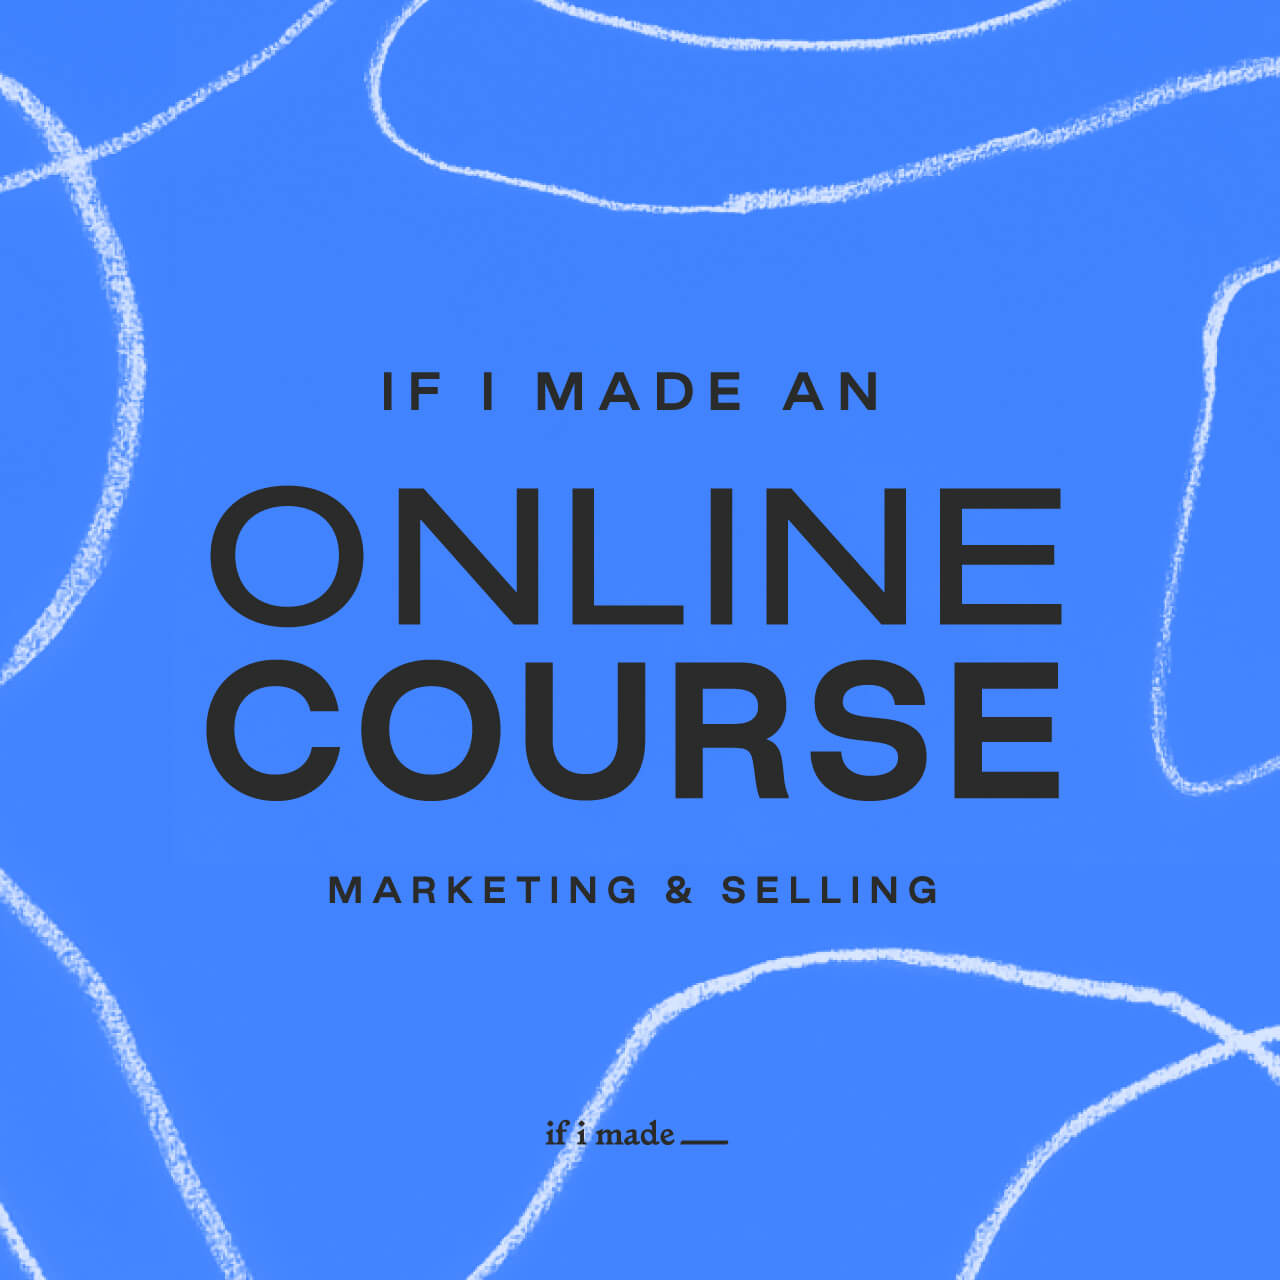 If I Made an Online Course: Marketing & Selling